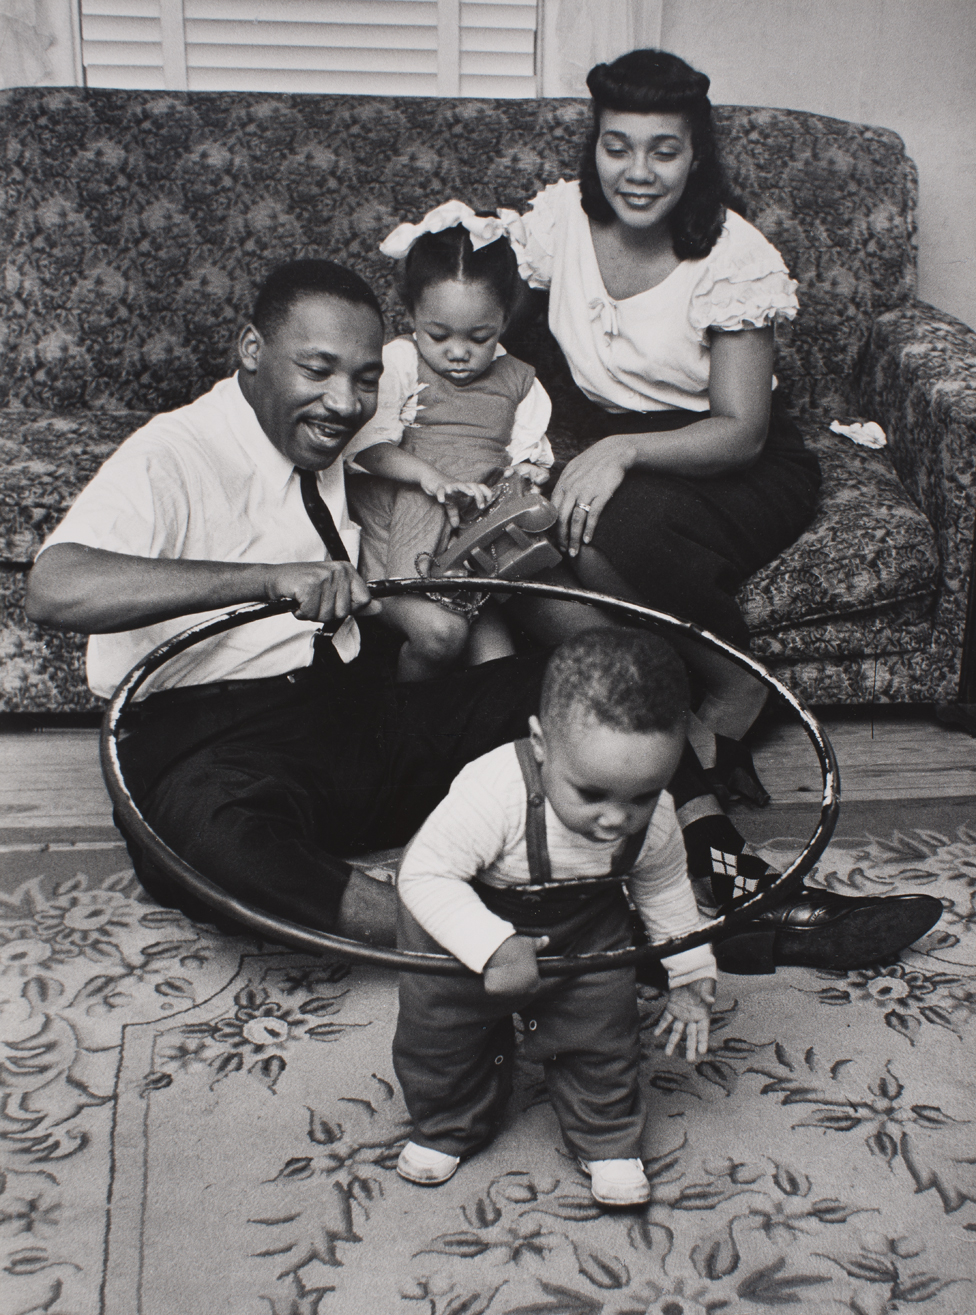 The King family at home - Montgomery, 1956